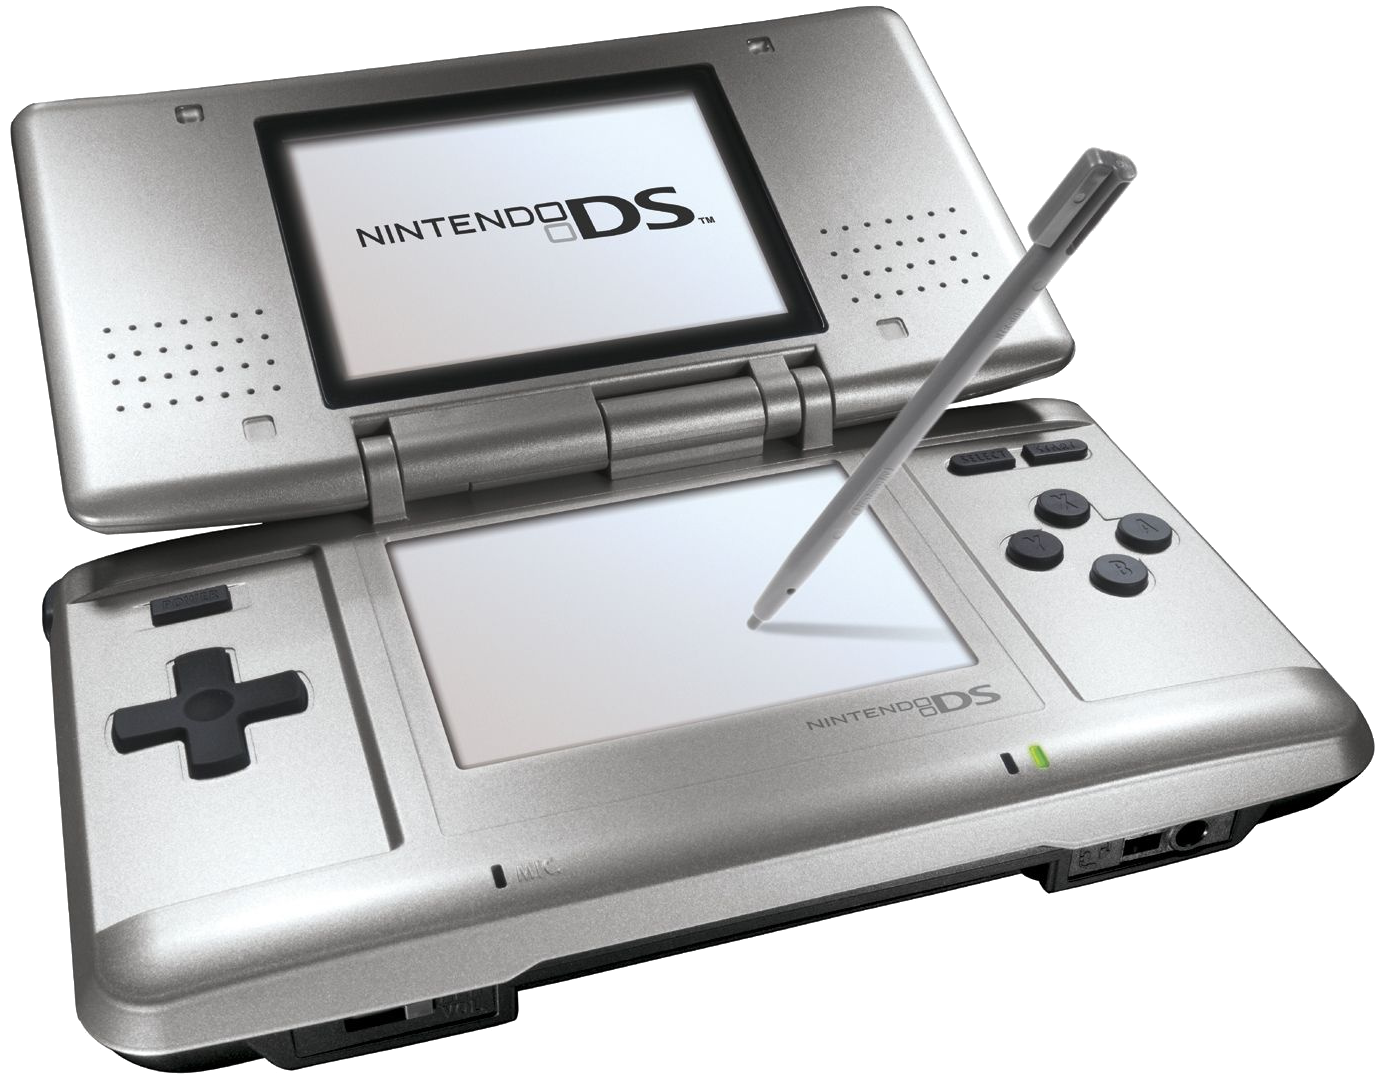 10 DS Games We Want To See On The Wii U Virtual Console